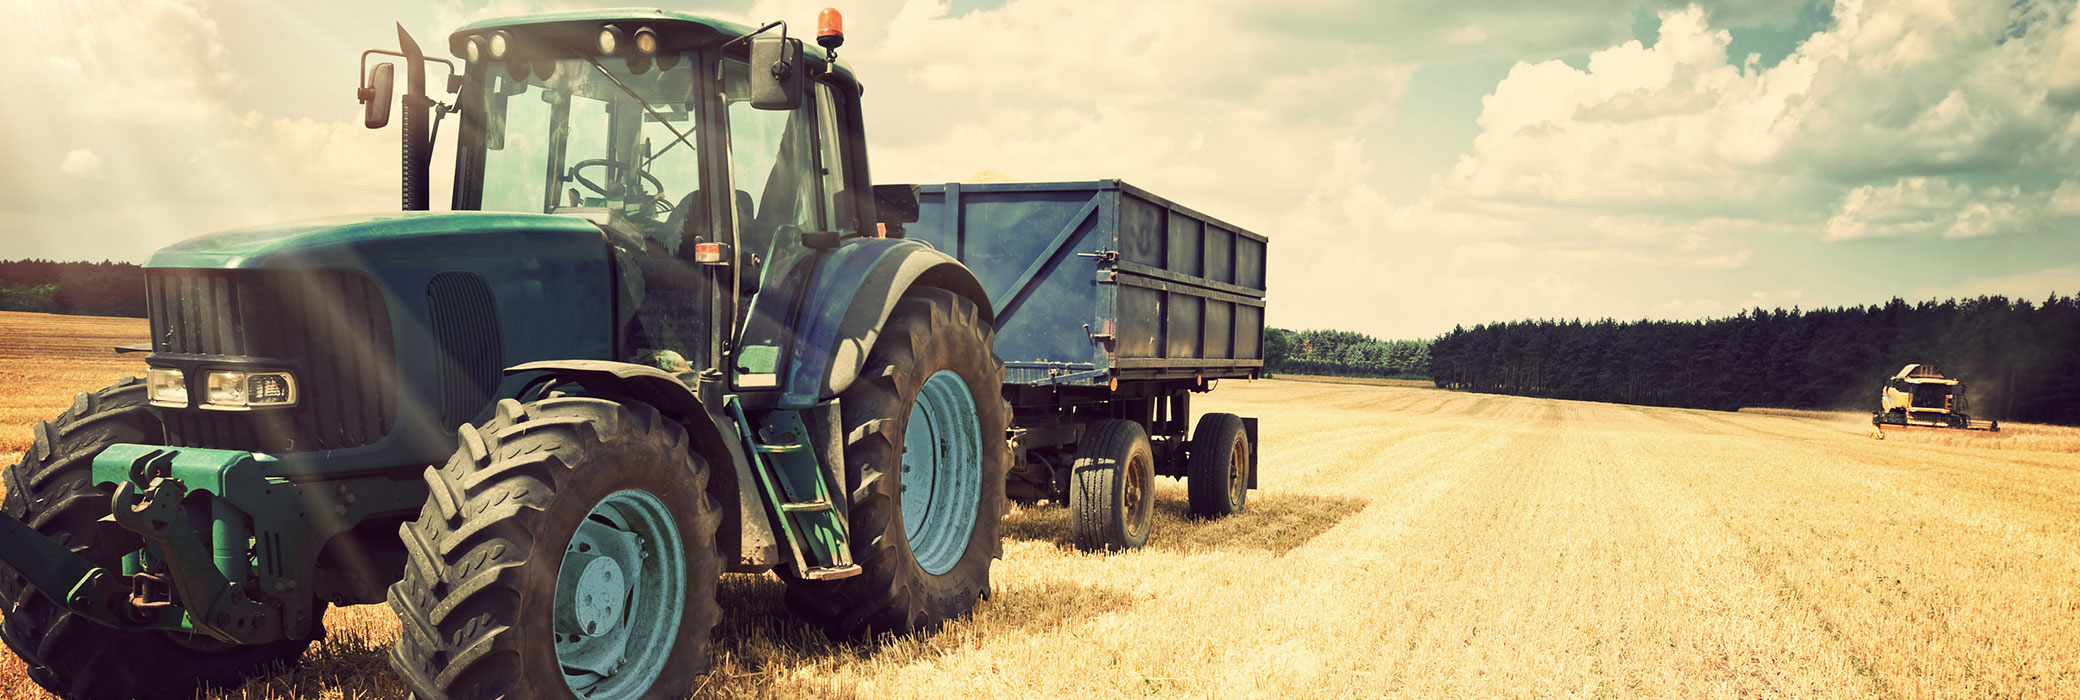 Blue tractor with a trailer standing on a field